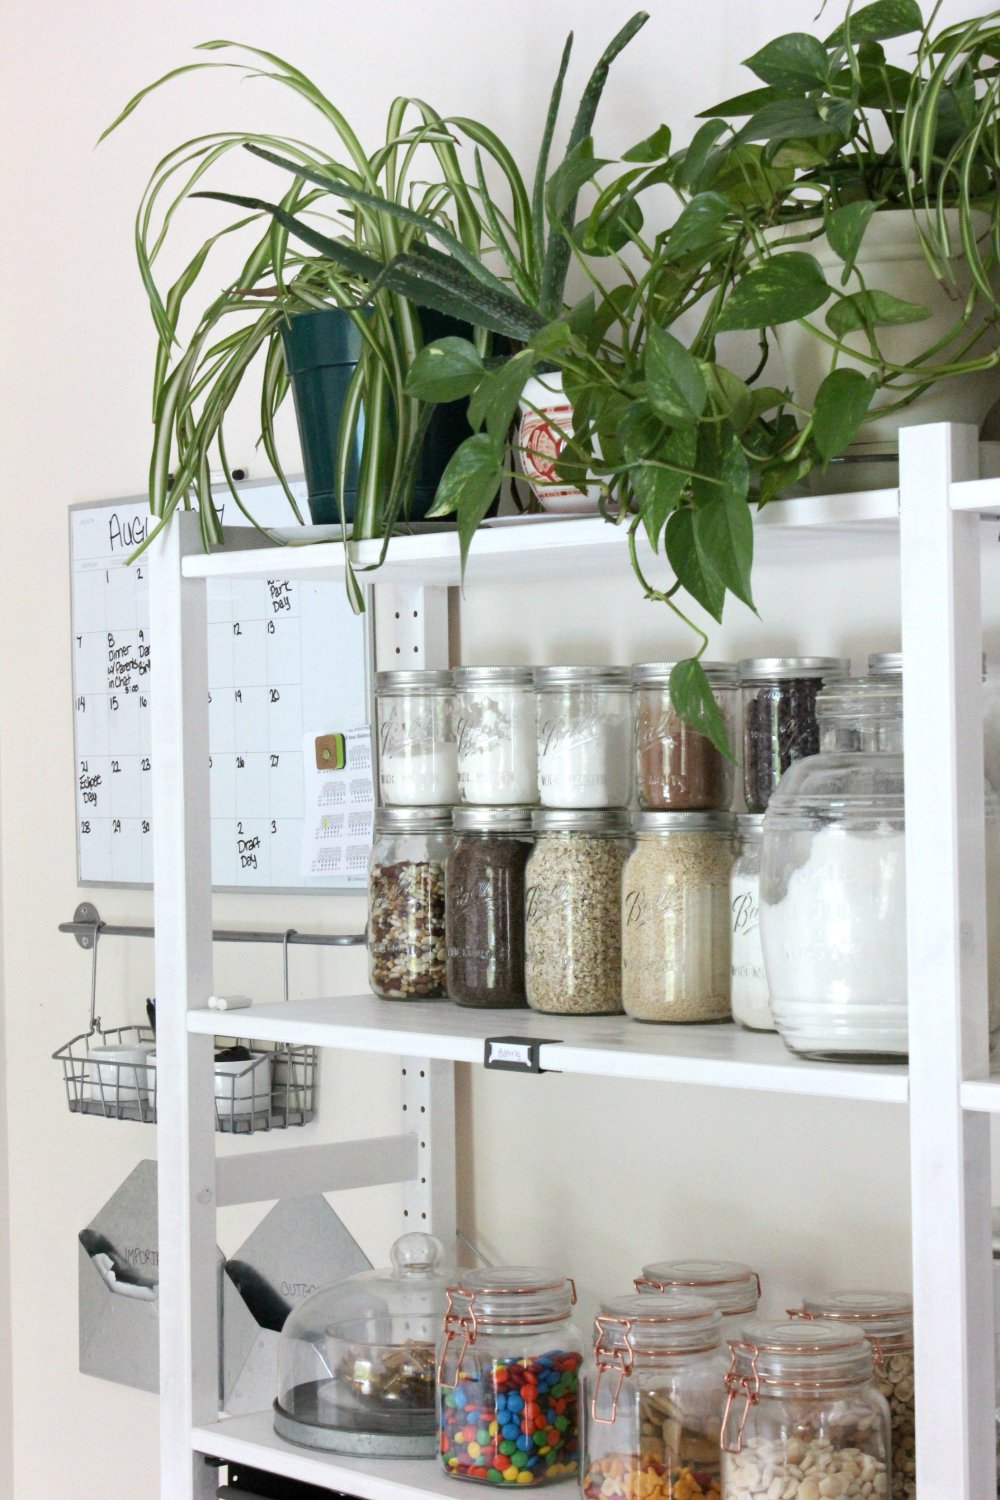 Open shelving kitchen pantry keeps you organized and saves money on groceries